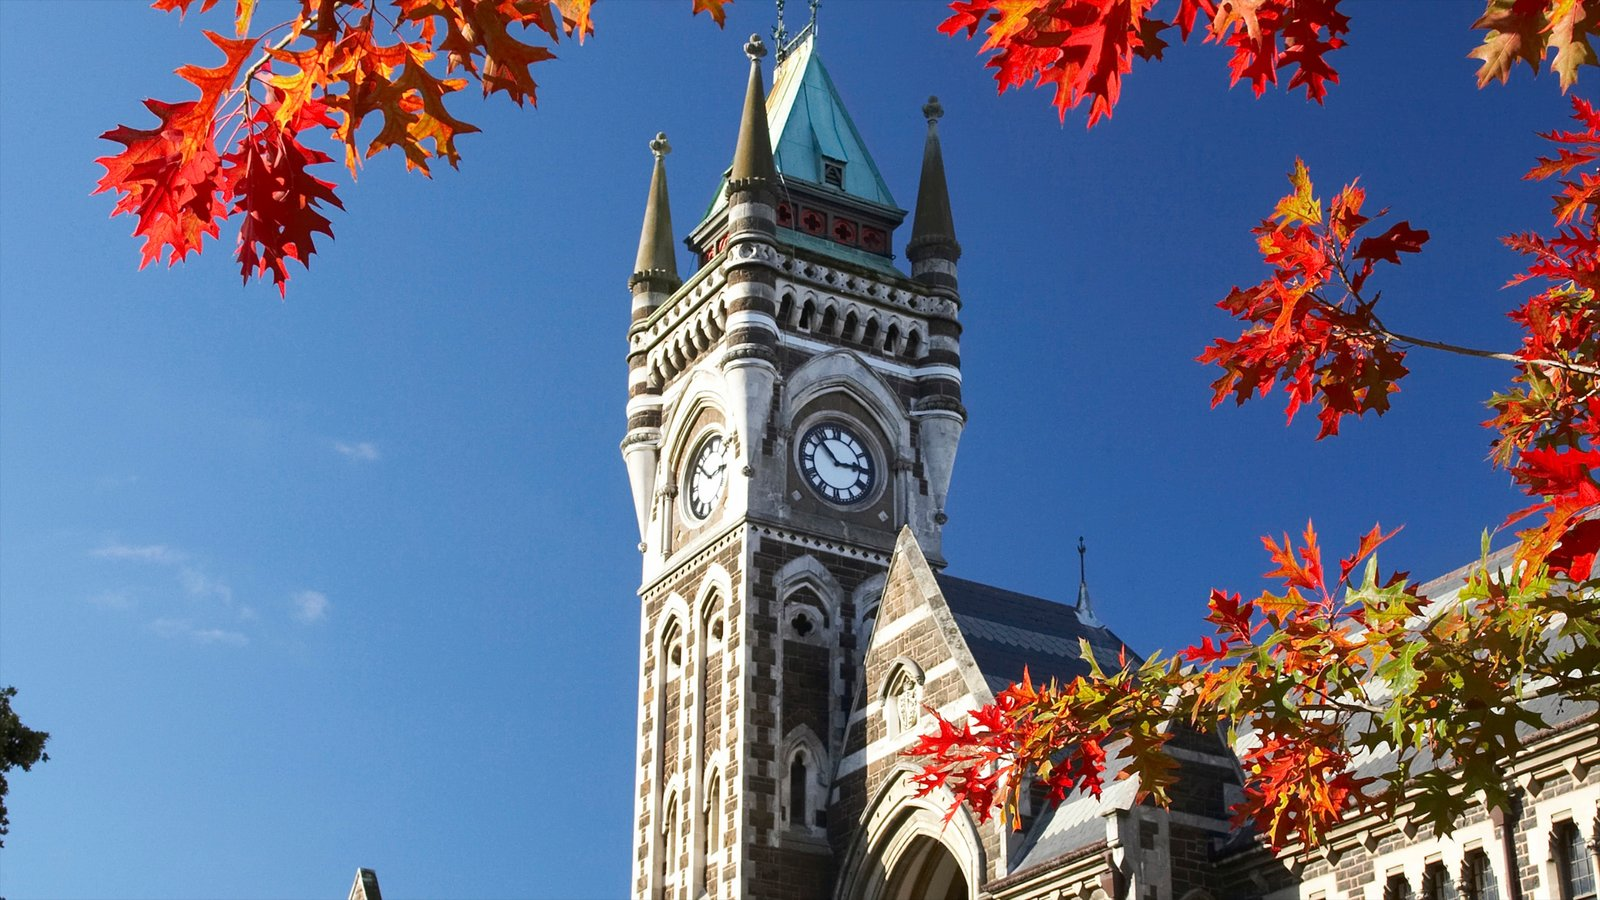 Dunedin featuring fall colors and heritage architecture